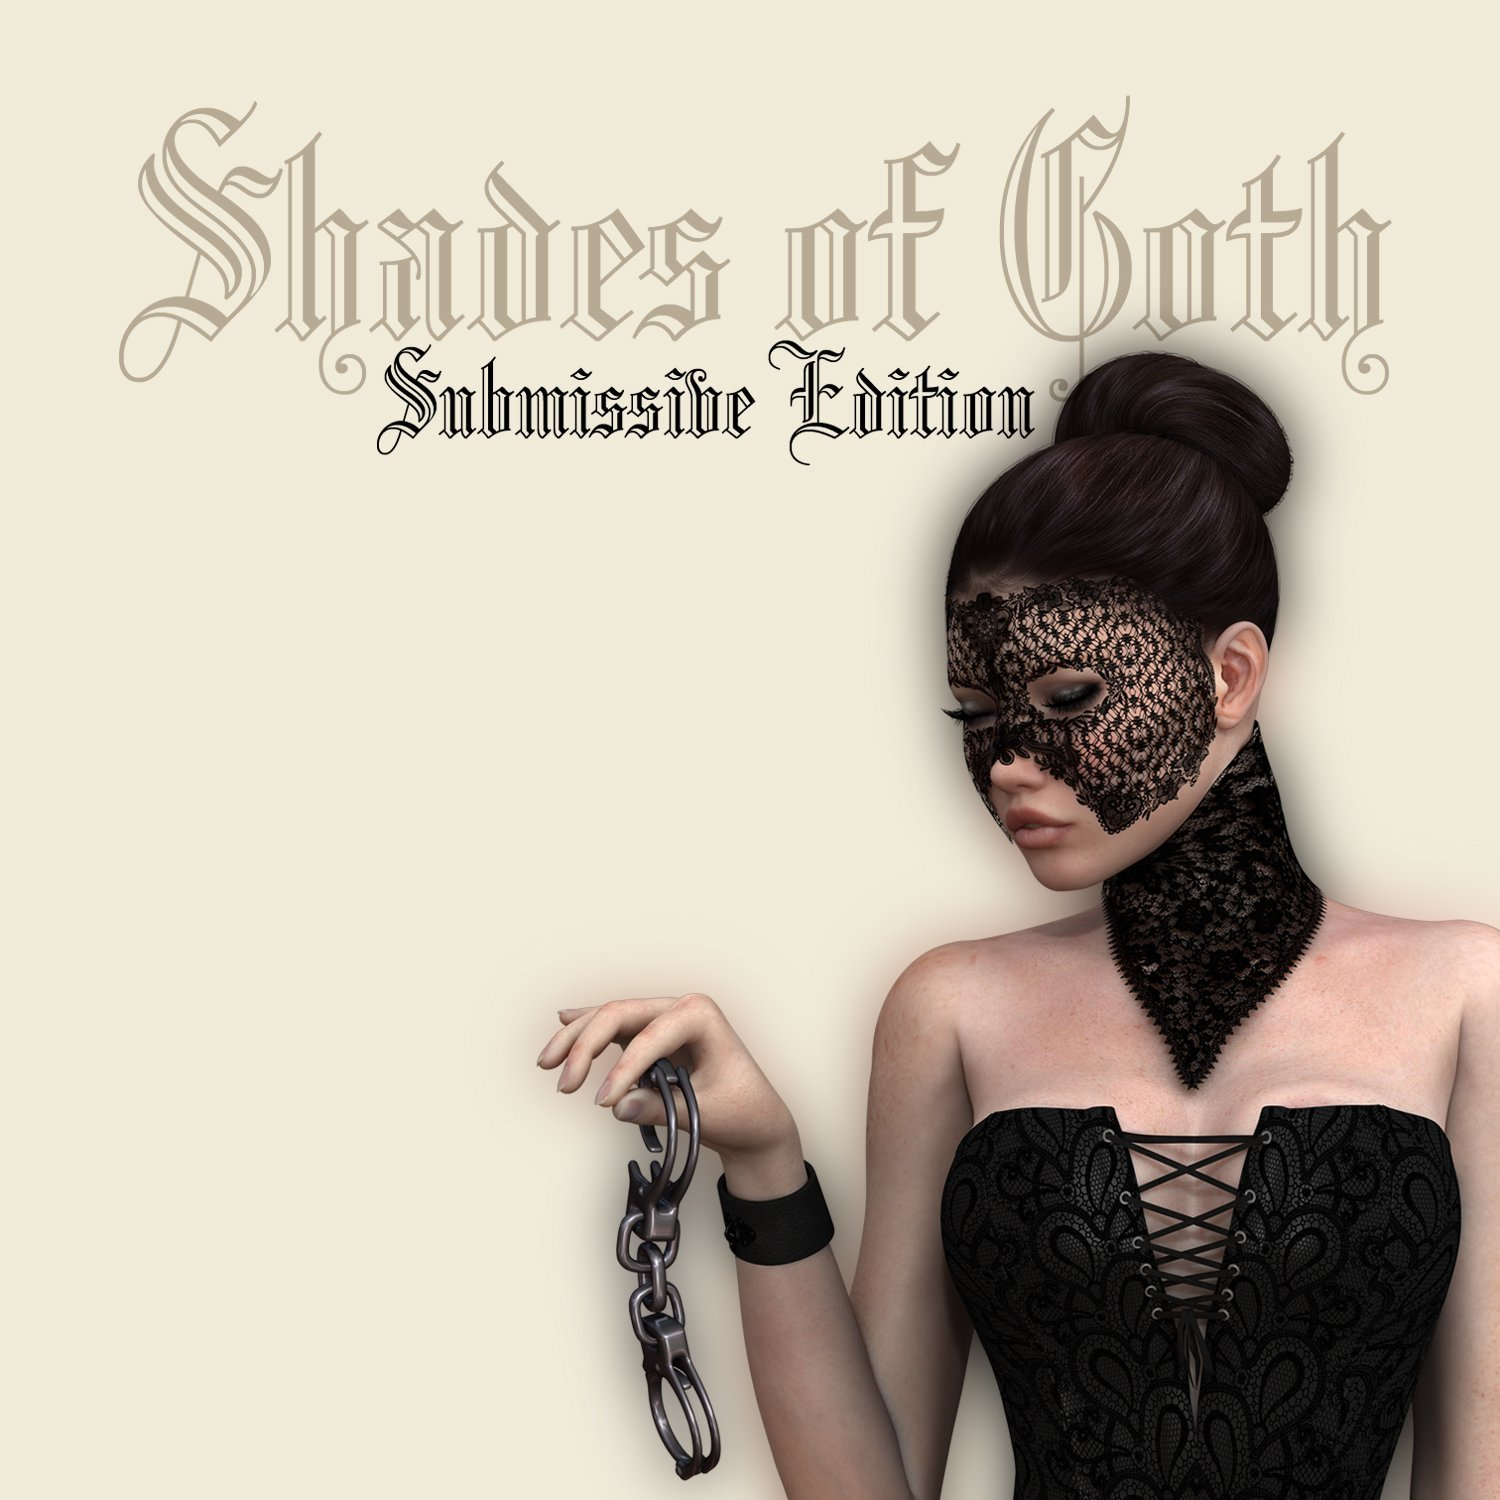 Various: Shades Of Goth: Submissive Edition (2013) Book Cover